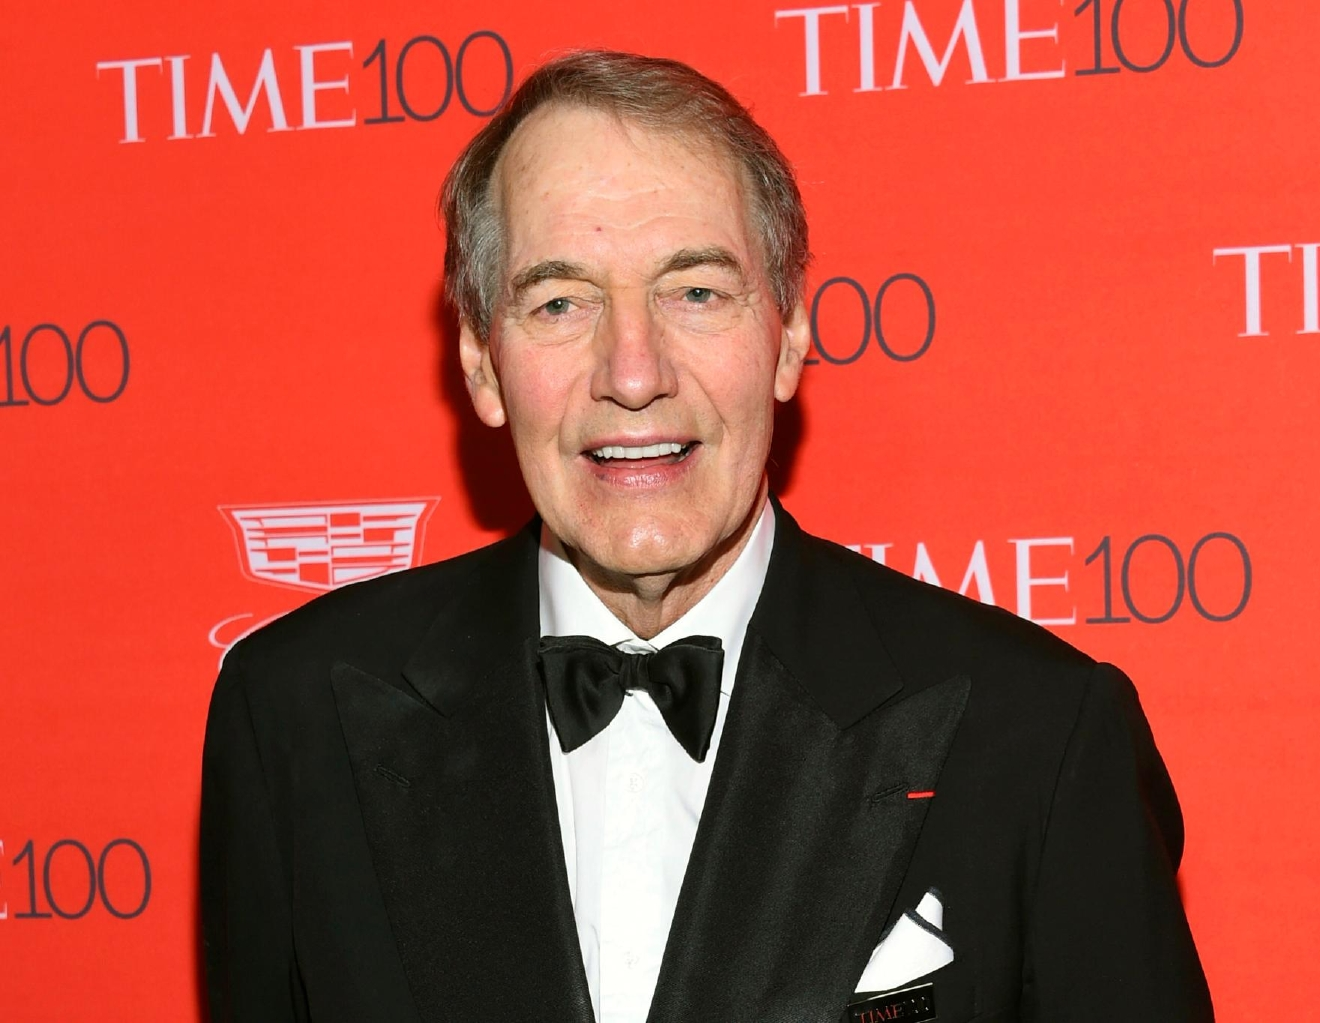 "FILE - In this April 26, 2016 file photo, Charlie Rose attends the TIME 100 Gala, celebrating the 100 most influential people in the world in New York. After getting the doctor's report that he's had an ""exemplary"" recovery, Rose is ready to return Monday after taking a month off ""CBS This Morning"" for heart surgery. (Photo by Evan Agostini/Invision/AP, File)"